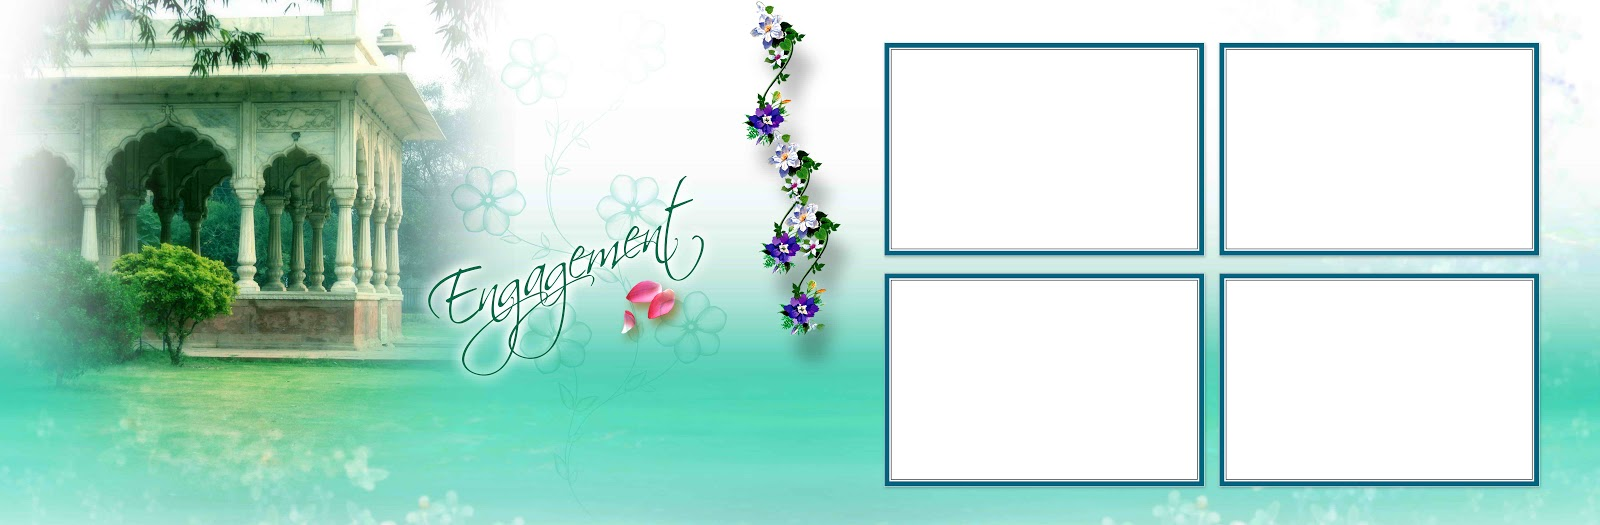 wedding album templates for photoshop free download - Acur.lunamedia.co